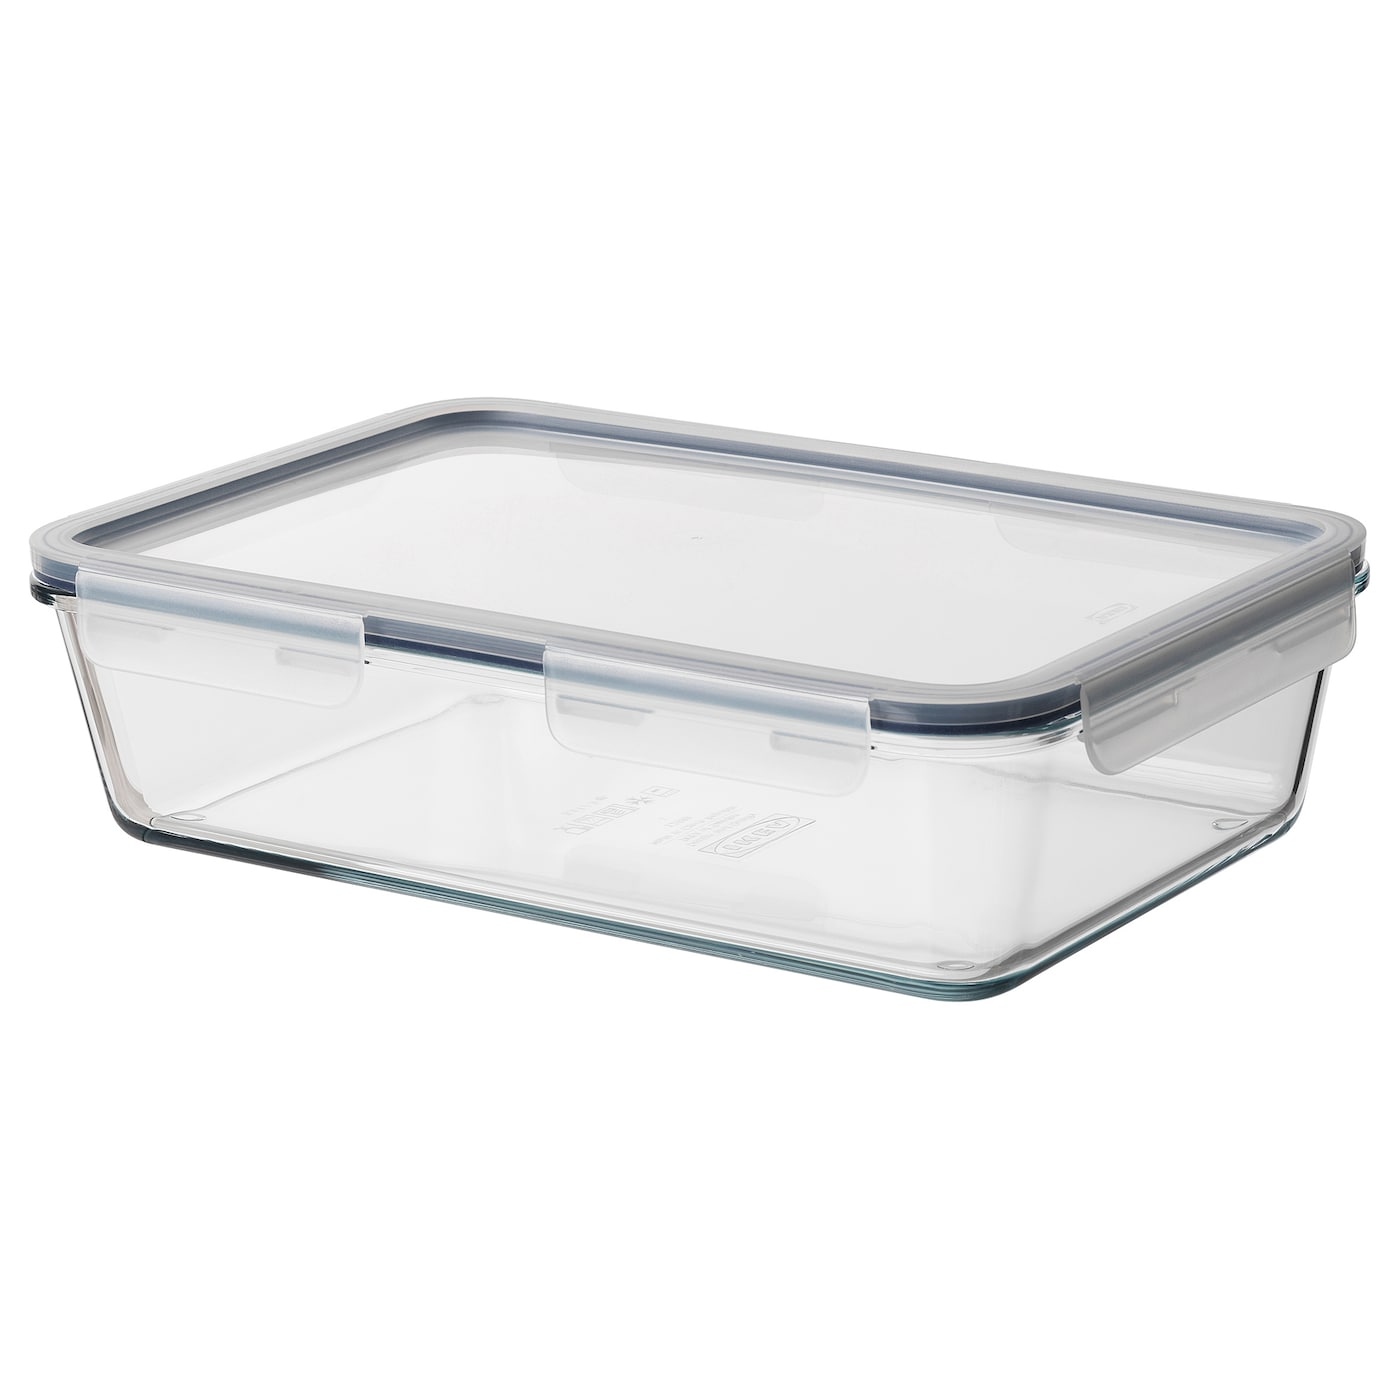 Ikea 365+ Food container with lid, rectangular/glass plastic105 oz (3.1 l)